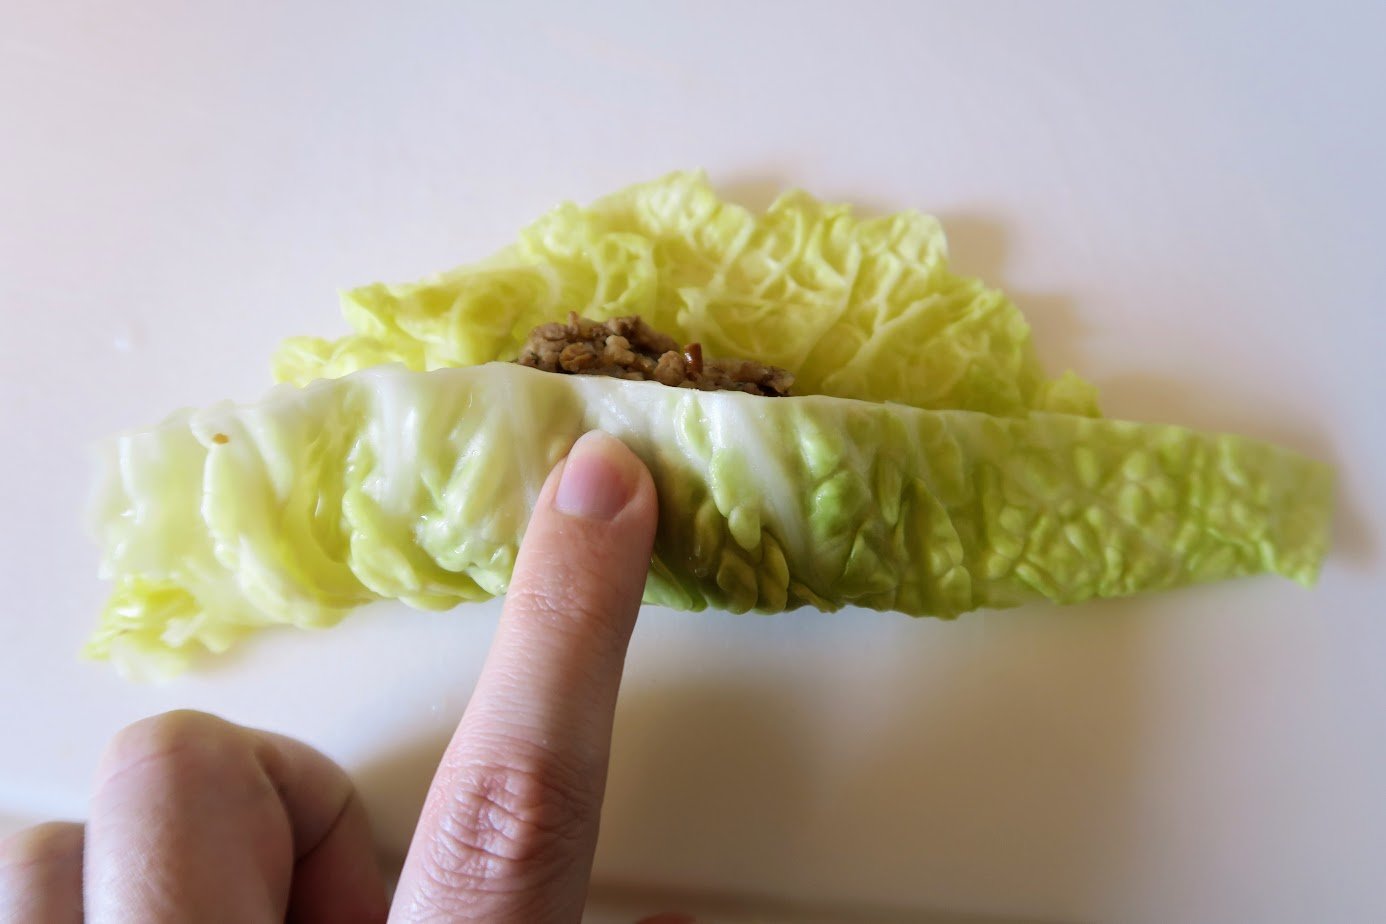 The bottom edge of the cabbage leaf partially covering the filling